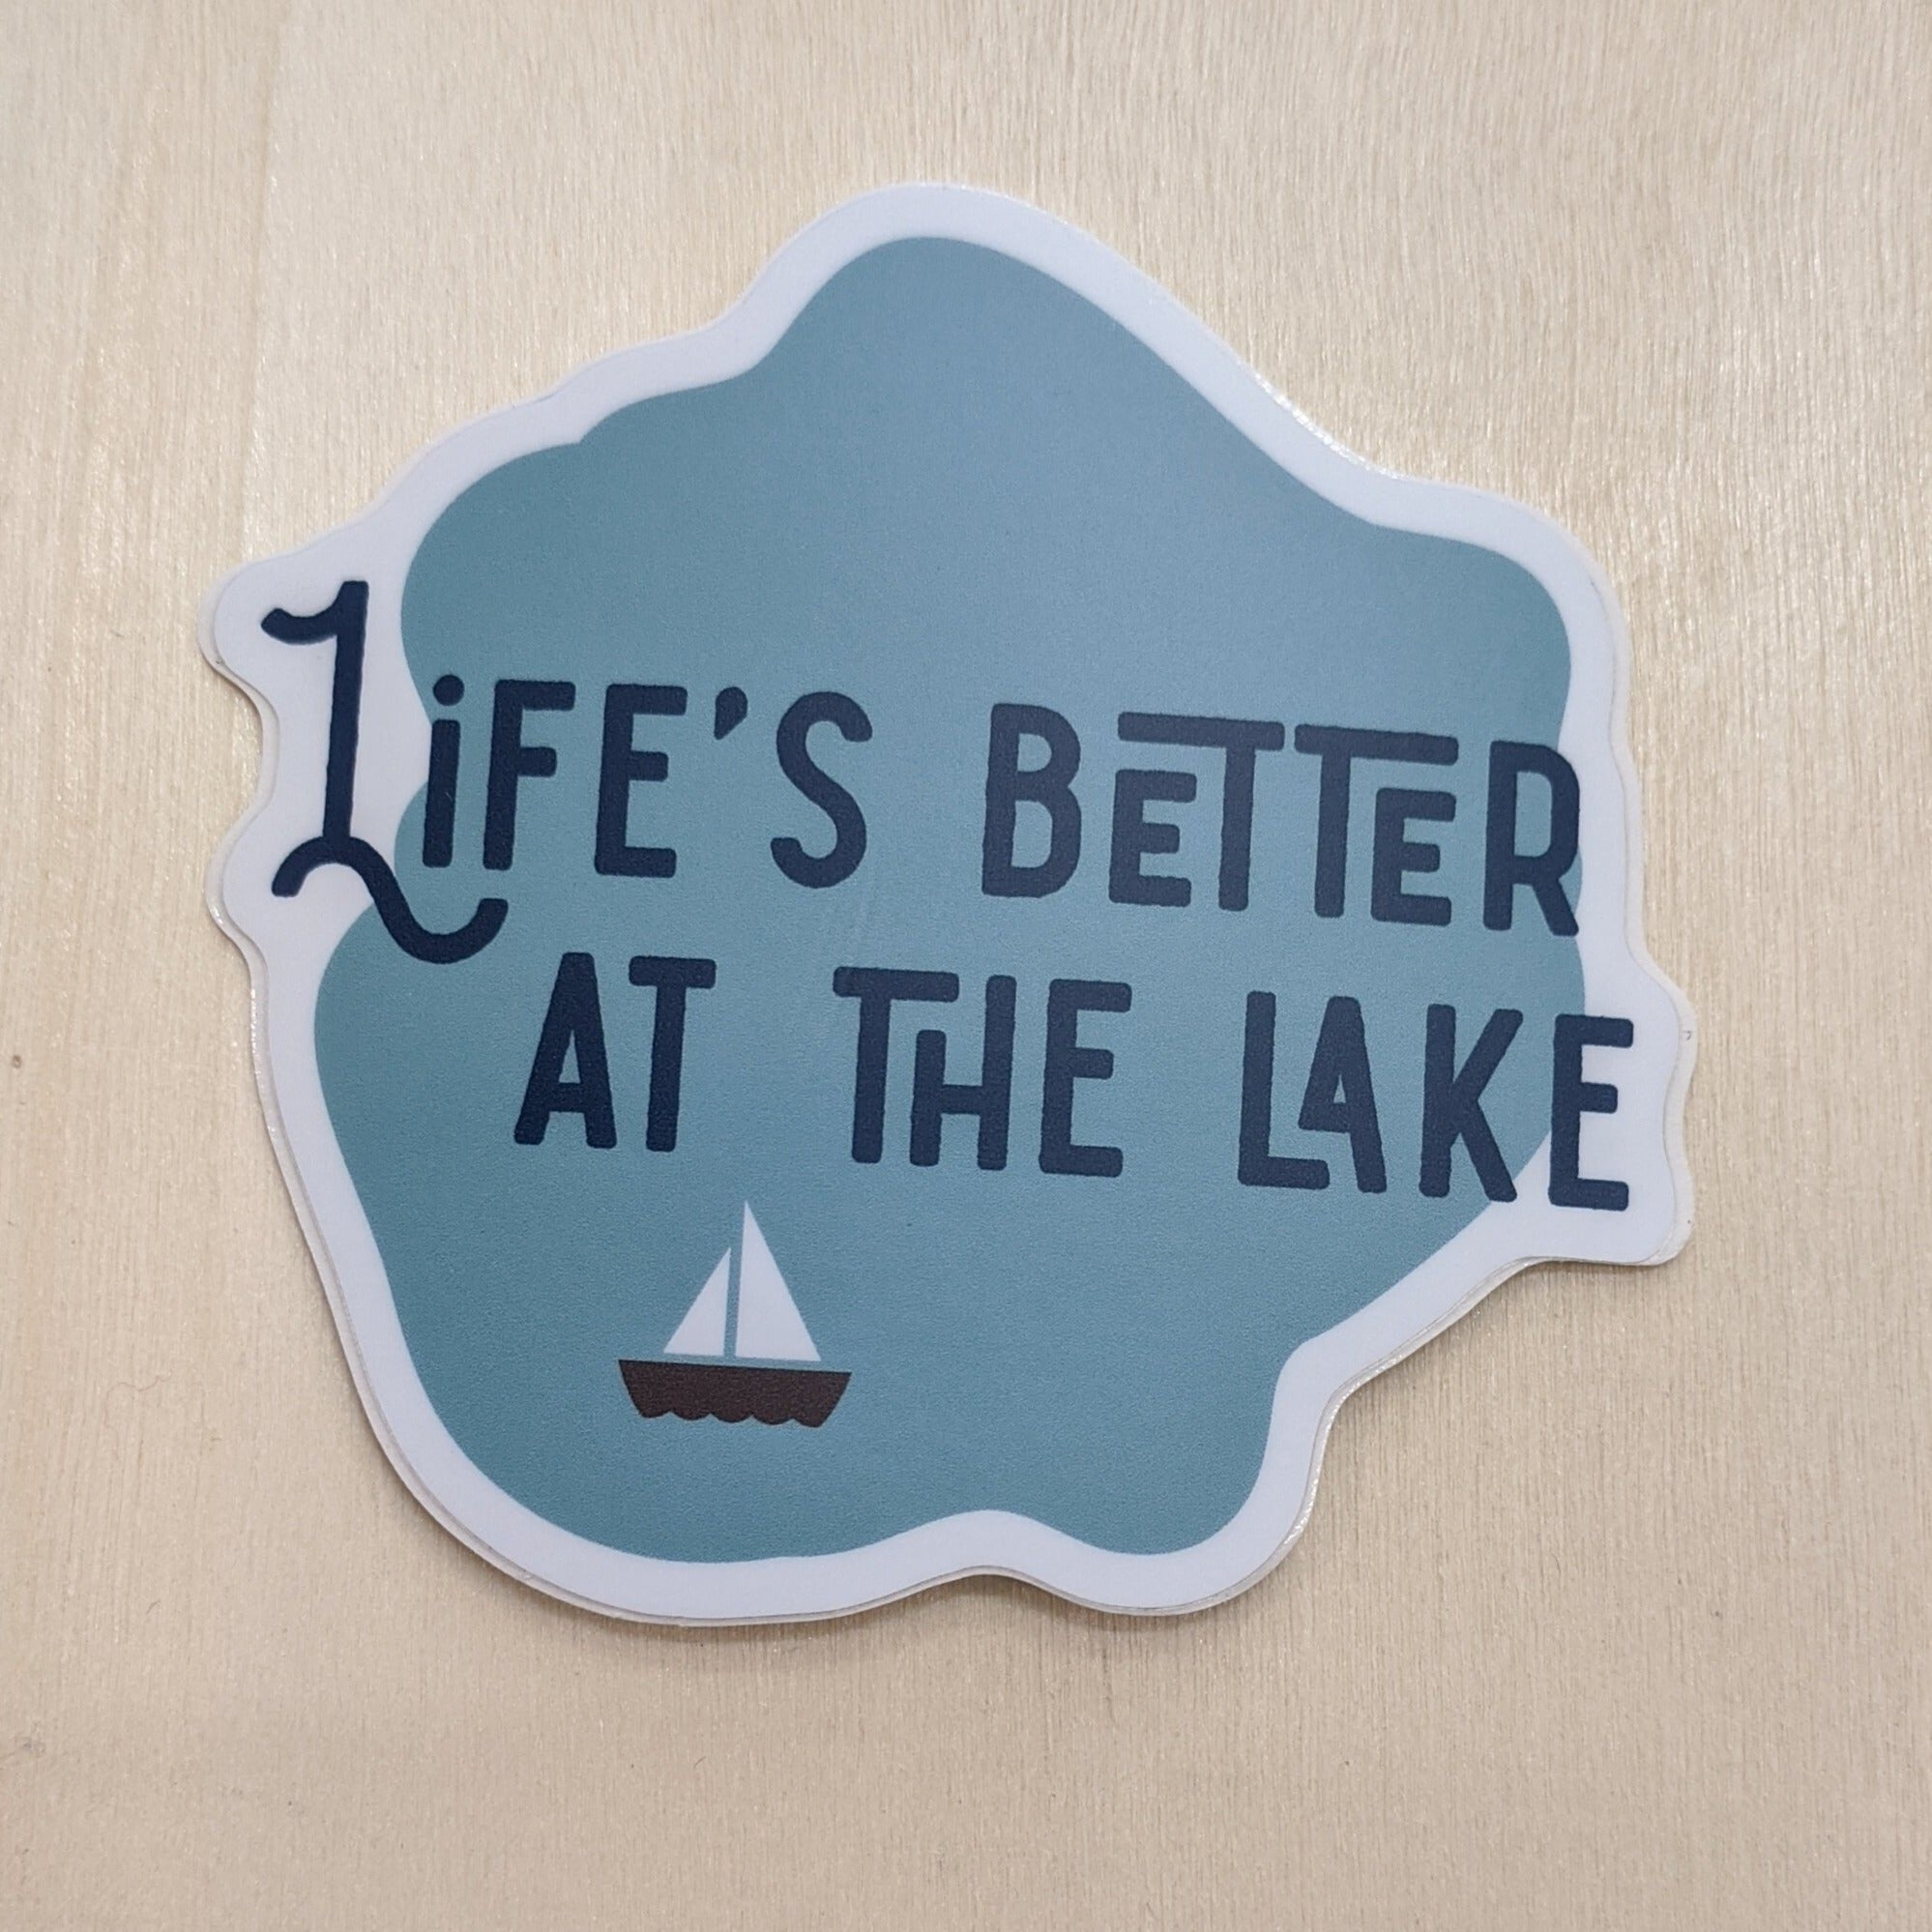 Sticker - Life's Better At The Lake